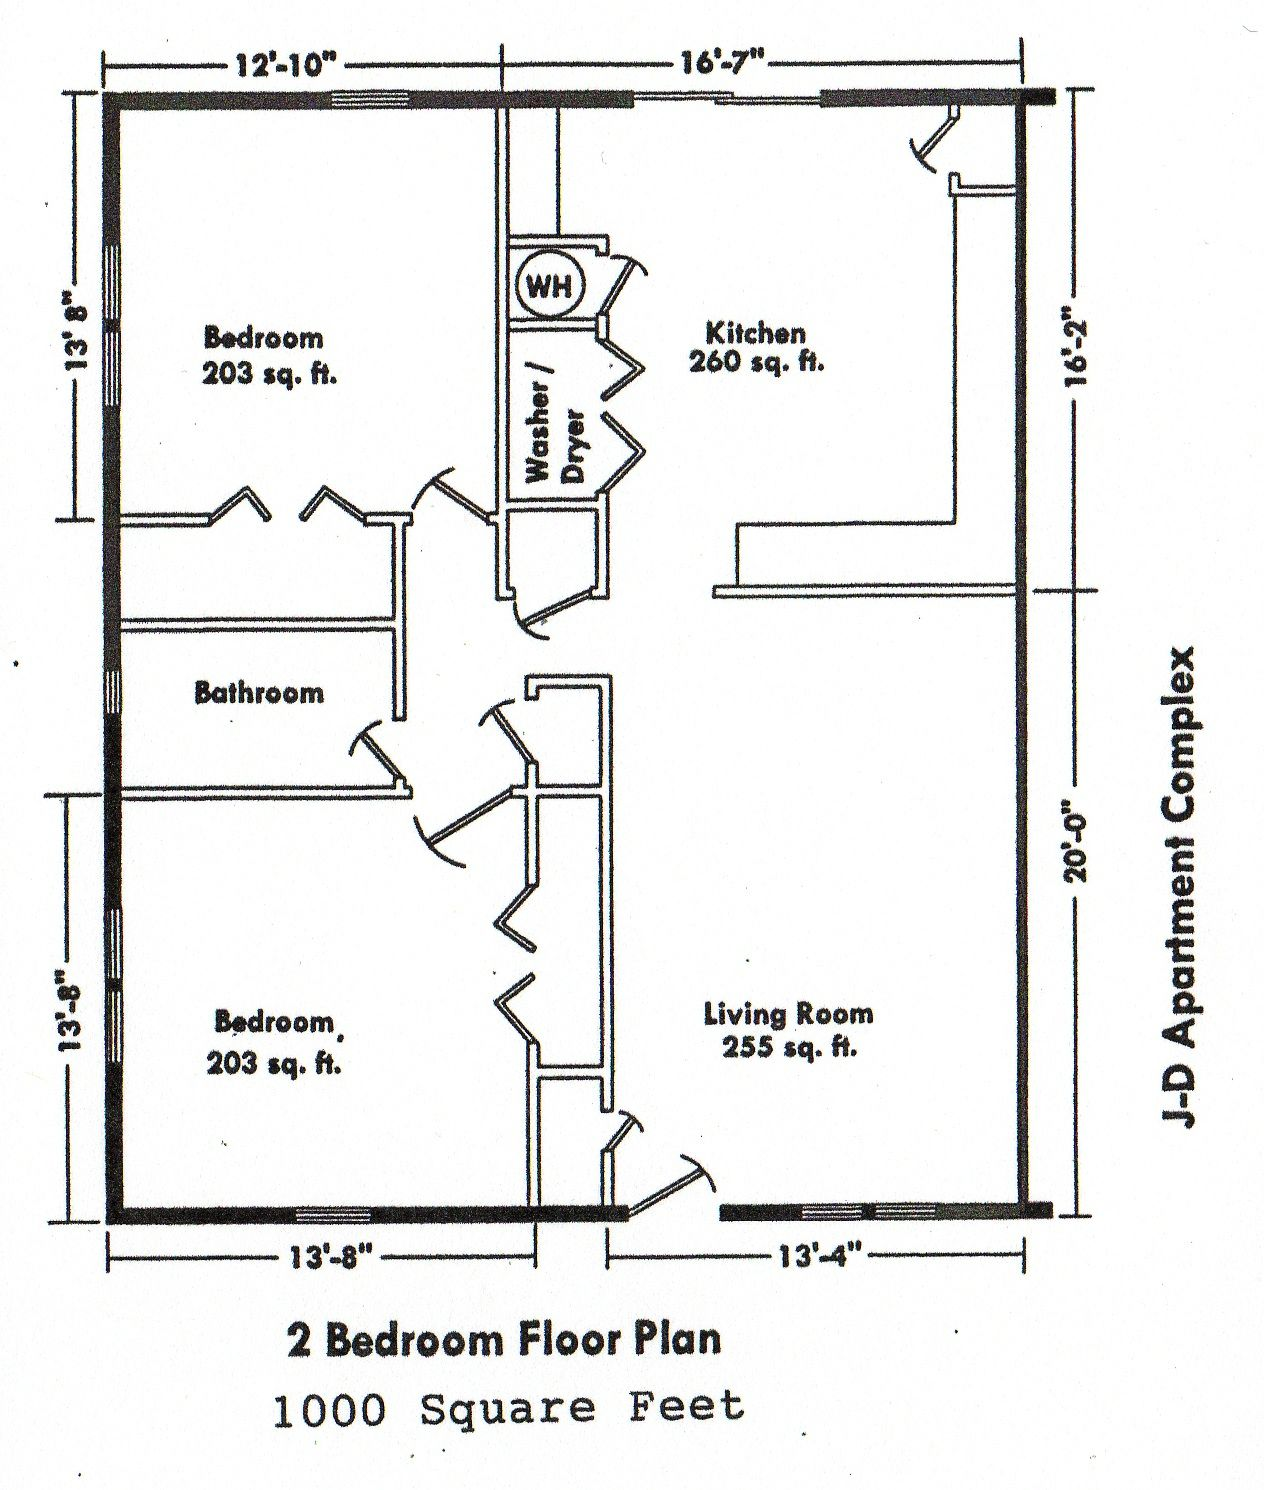 Small house floor plans 2 bedrooms master bedroom suite for Bedroom addition plans free